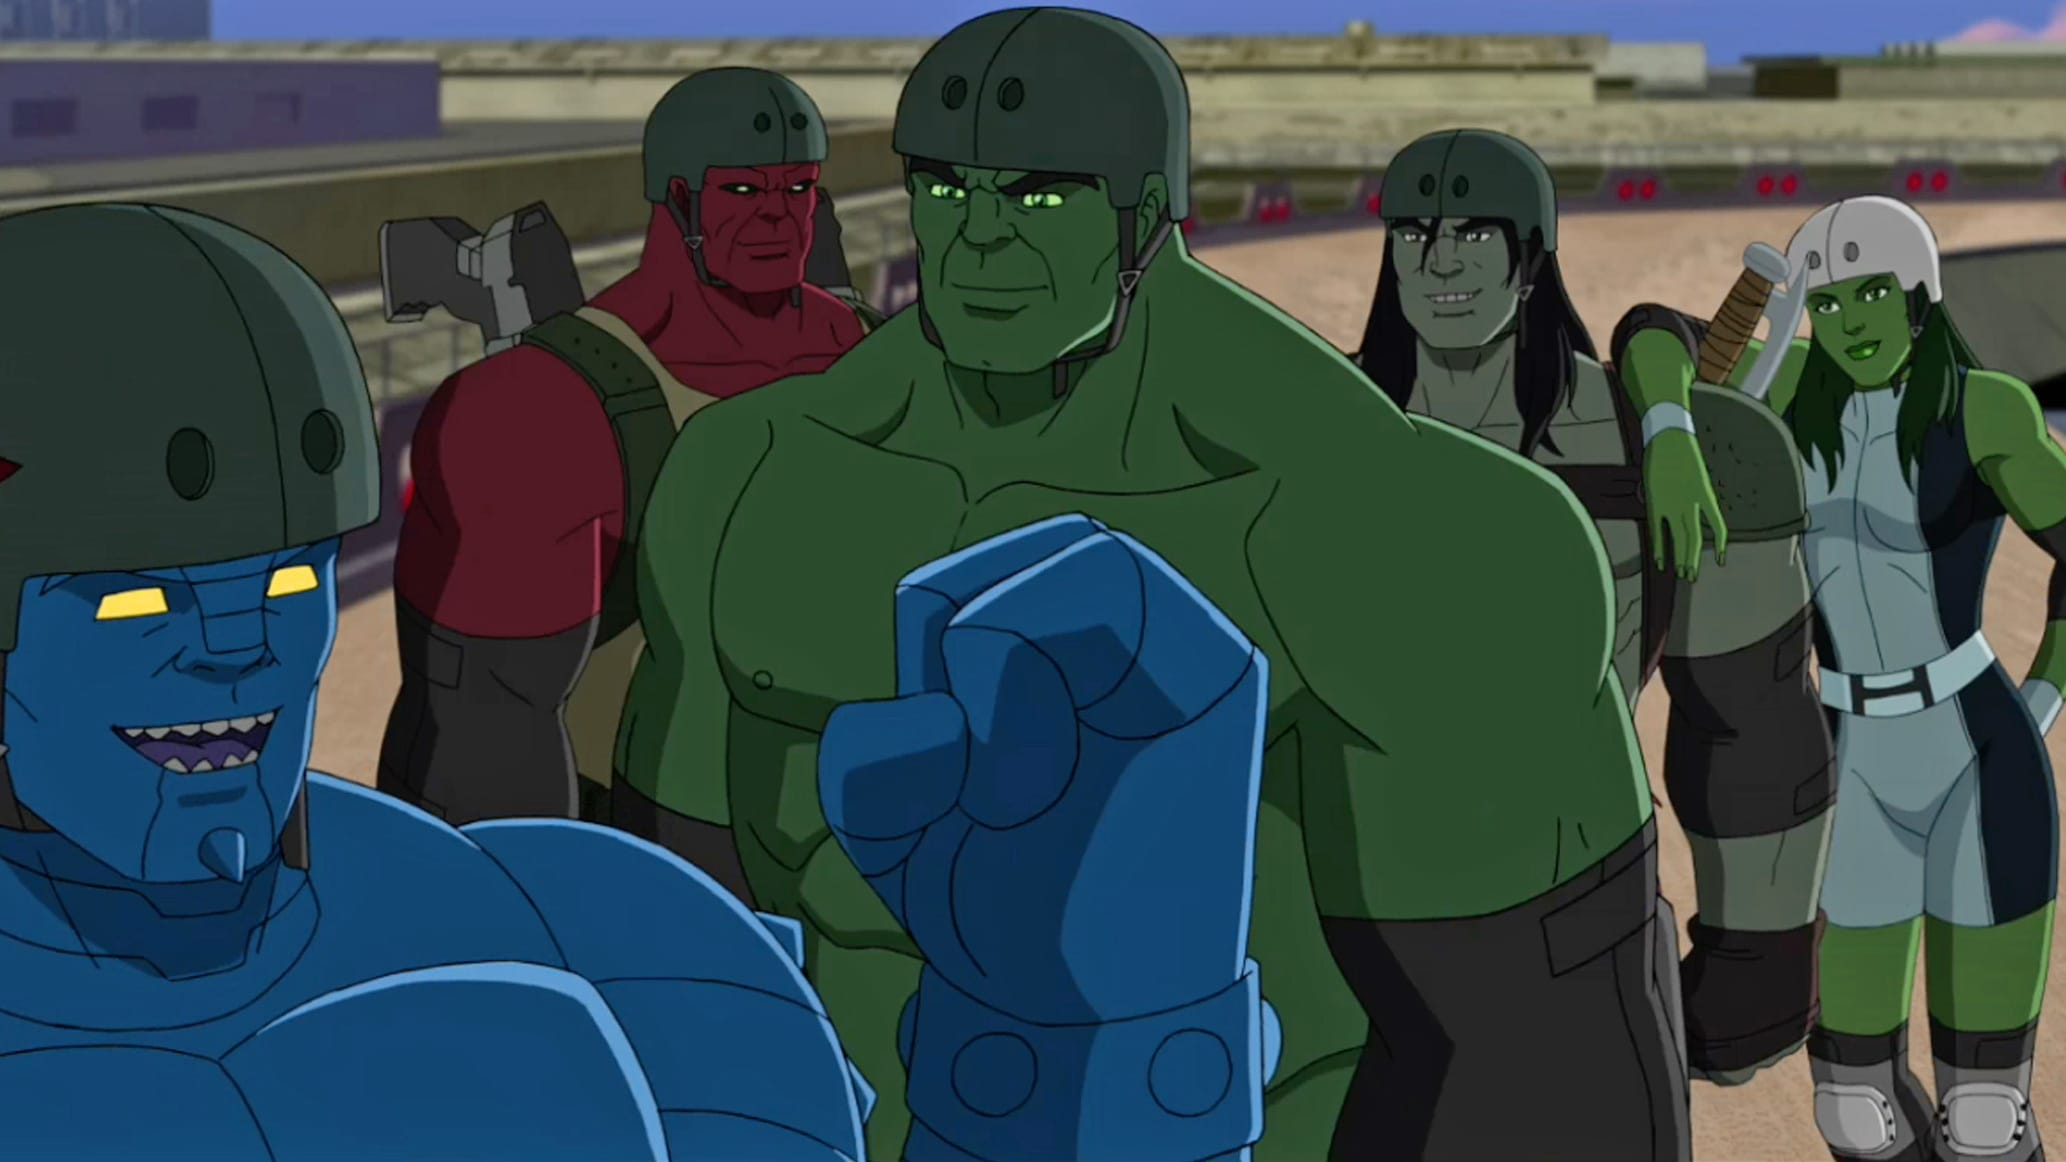 Hulk and the Agents of S.M.A.S.H. Season 2 18